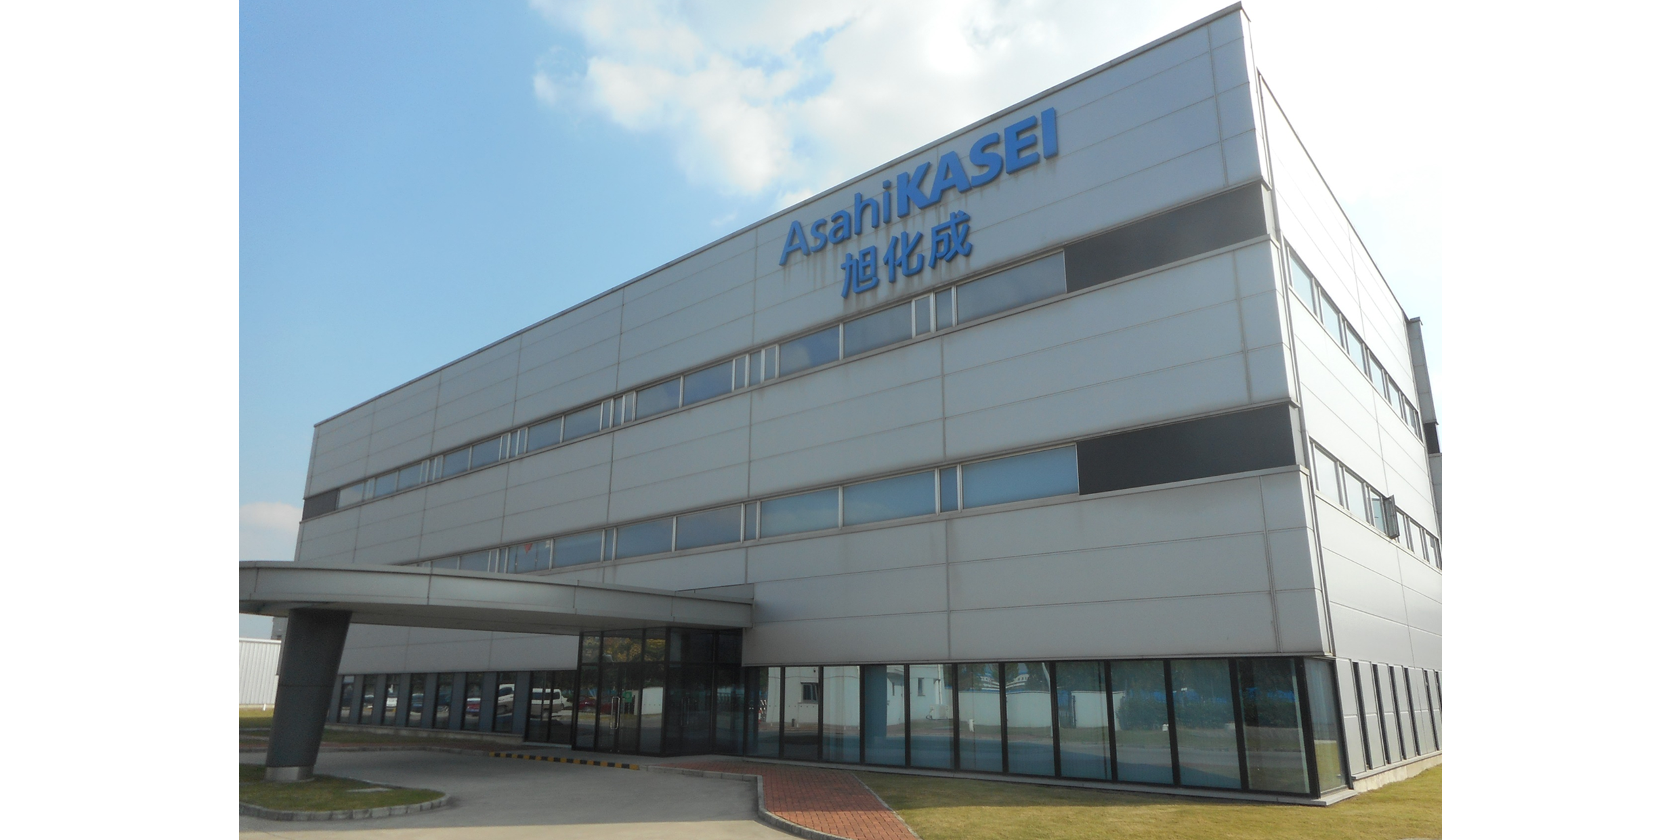 Asahi Kasei Plant in China to Help Build Asia-Wide Photosensitive Resin Business